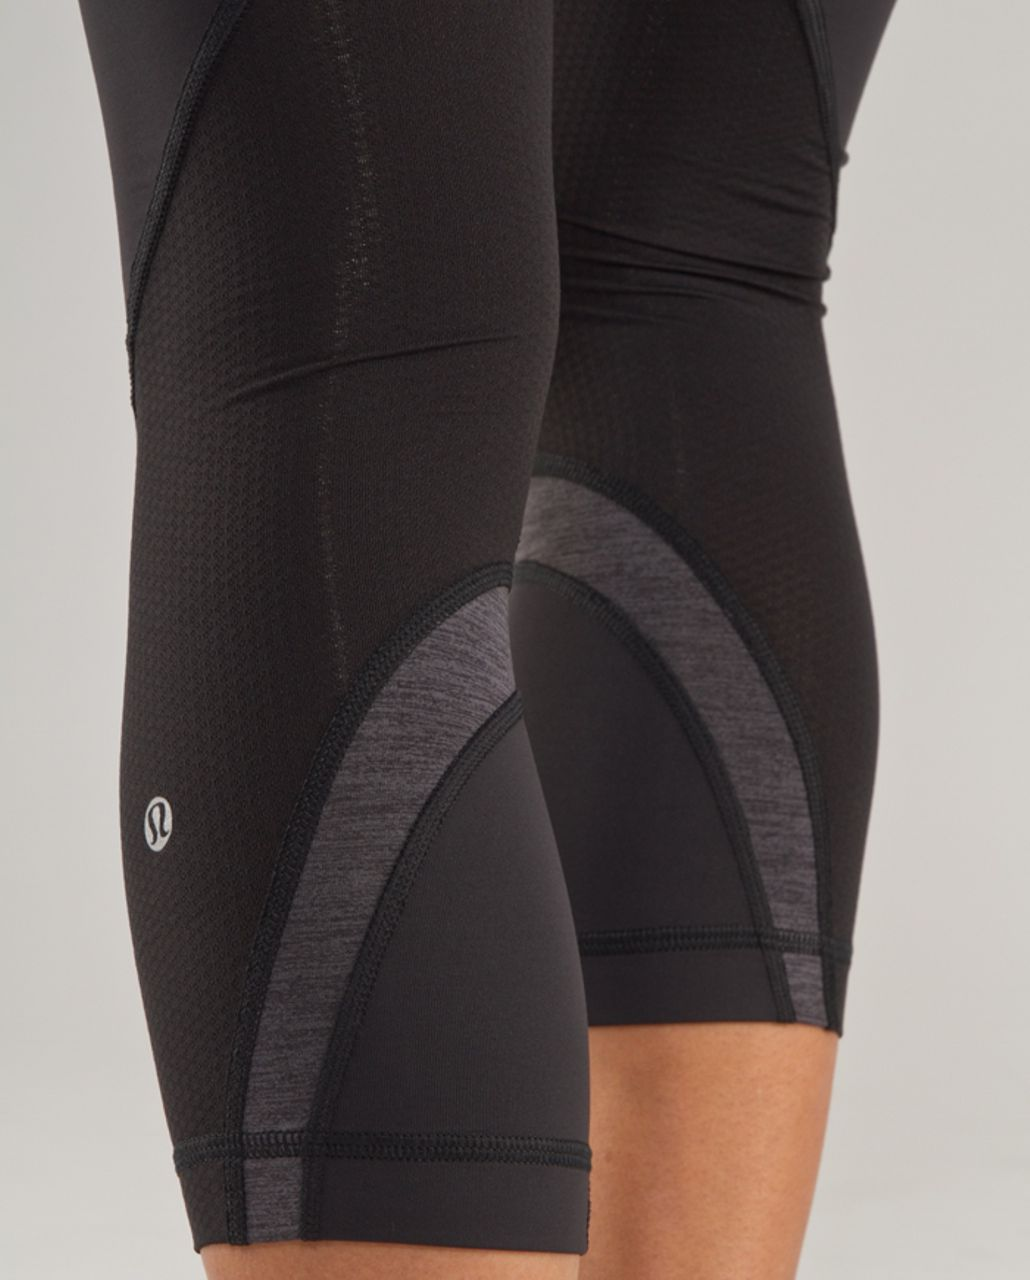 Lululemon Run: Inspire Crop II - Black / Heathered Dark Black / Black Swan